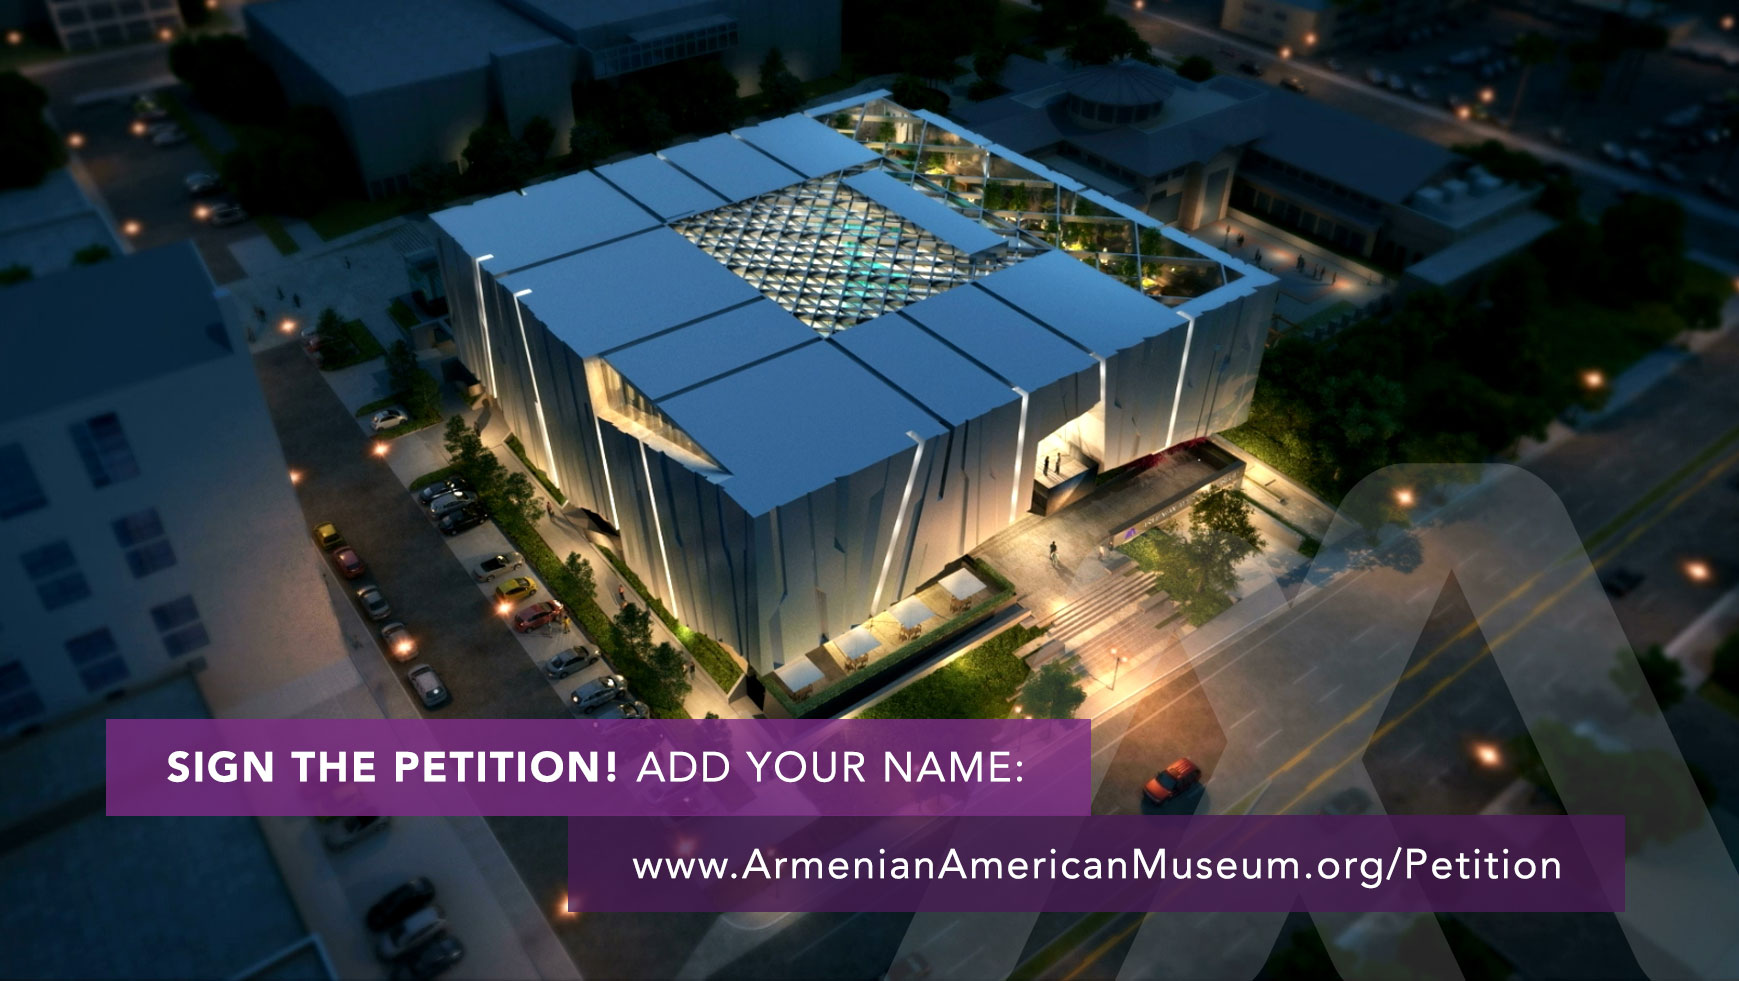 Armenian American Museum Petition